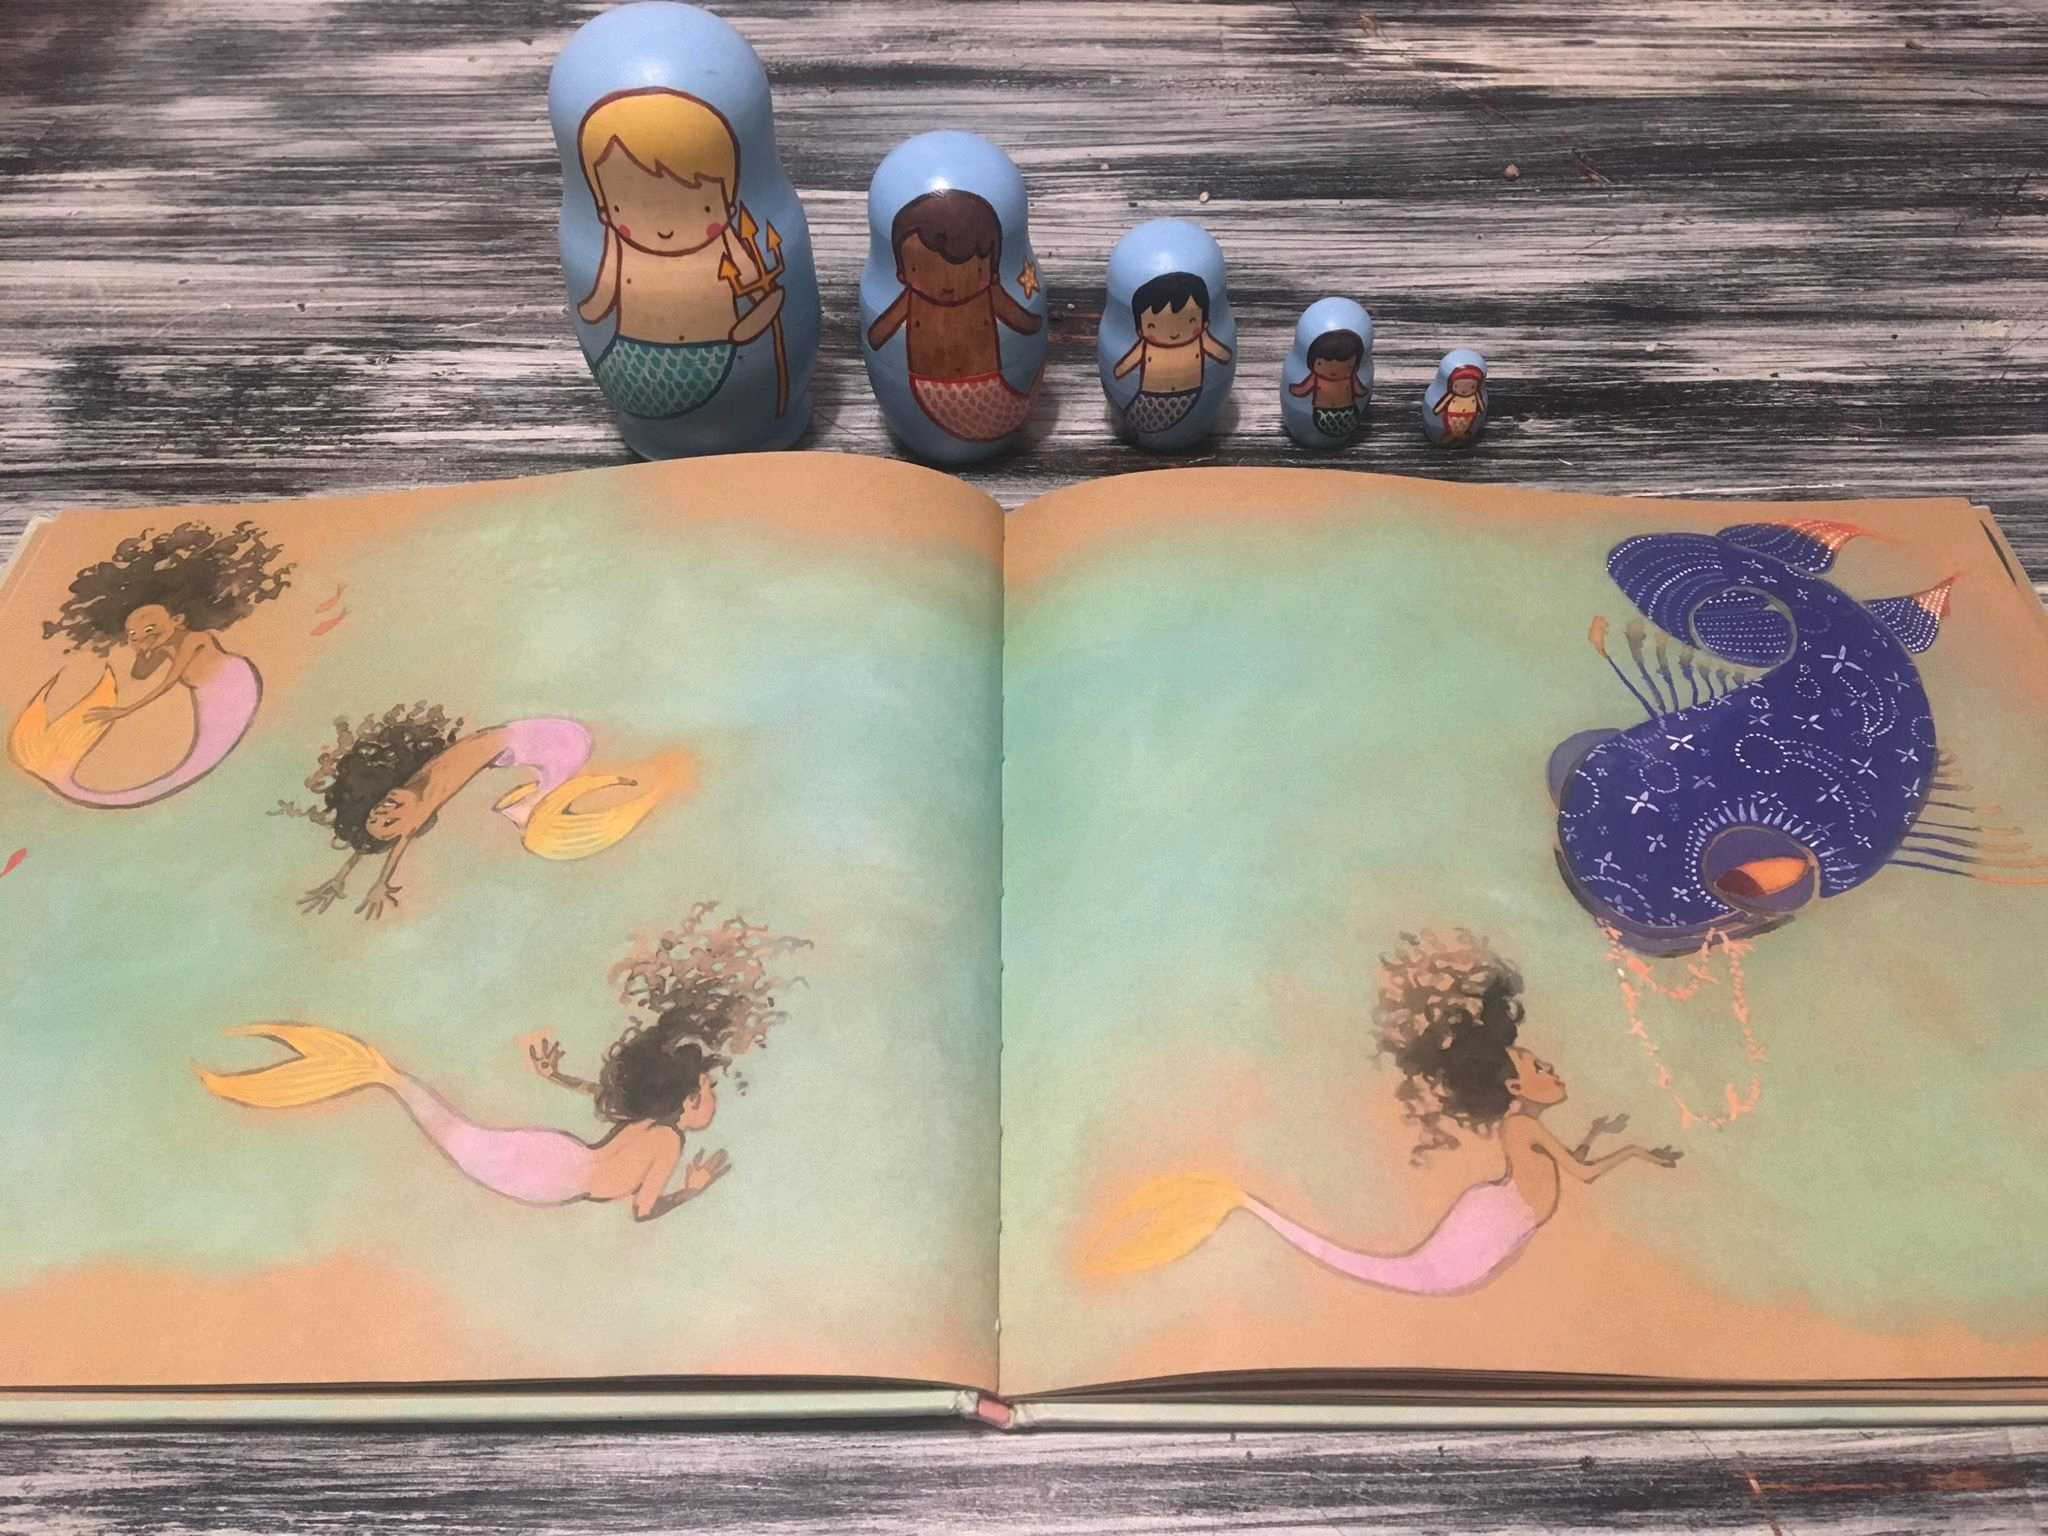 The entire book is fully of dreamy, beautiful illustrations I can't get enough of.